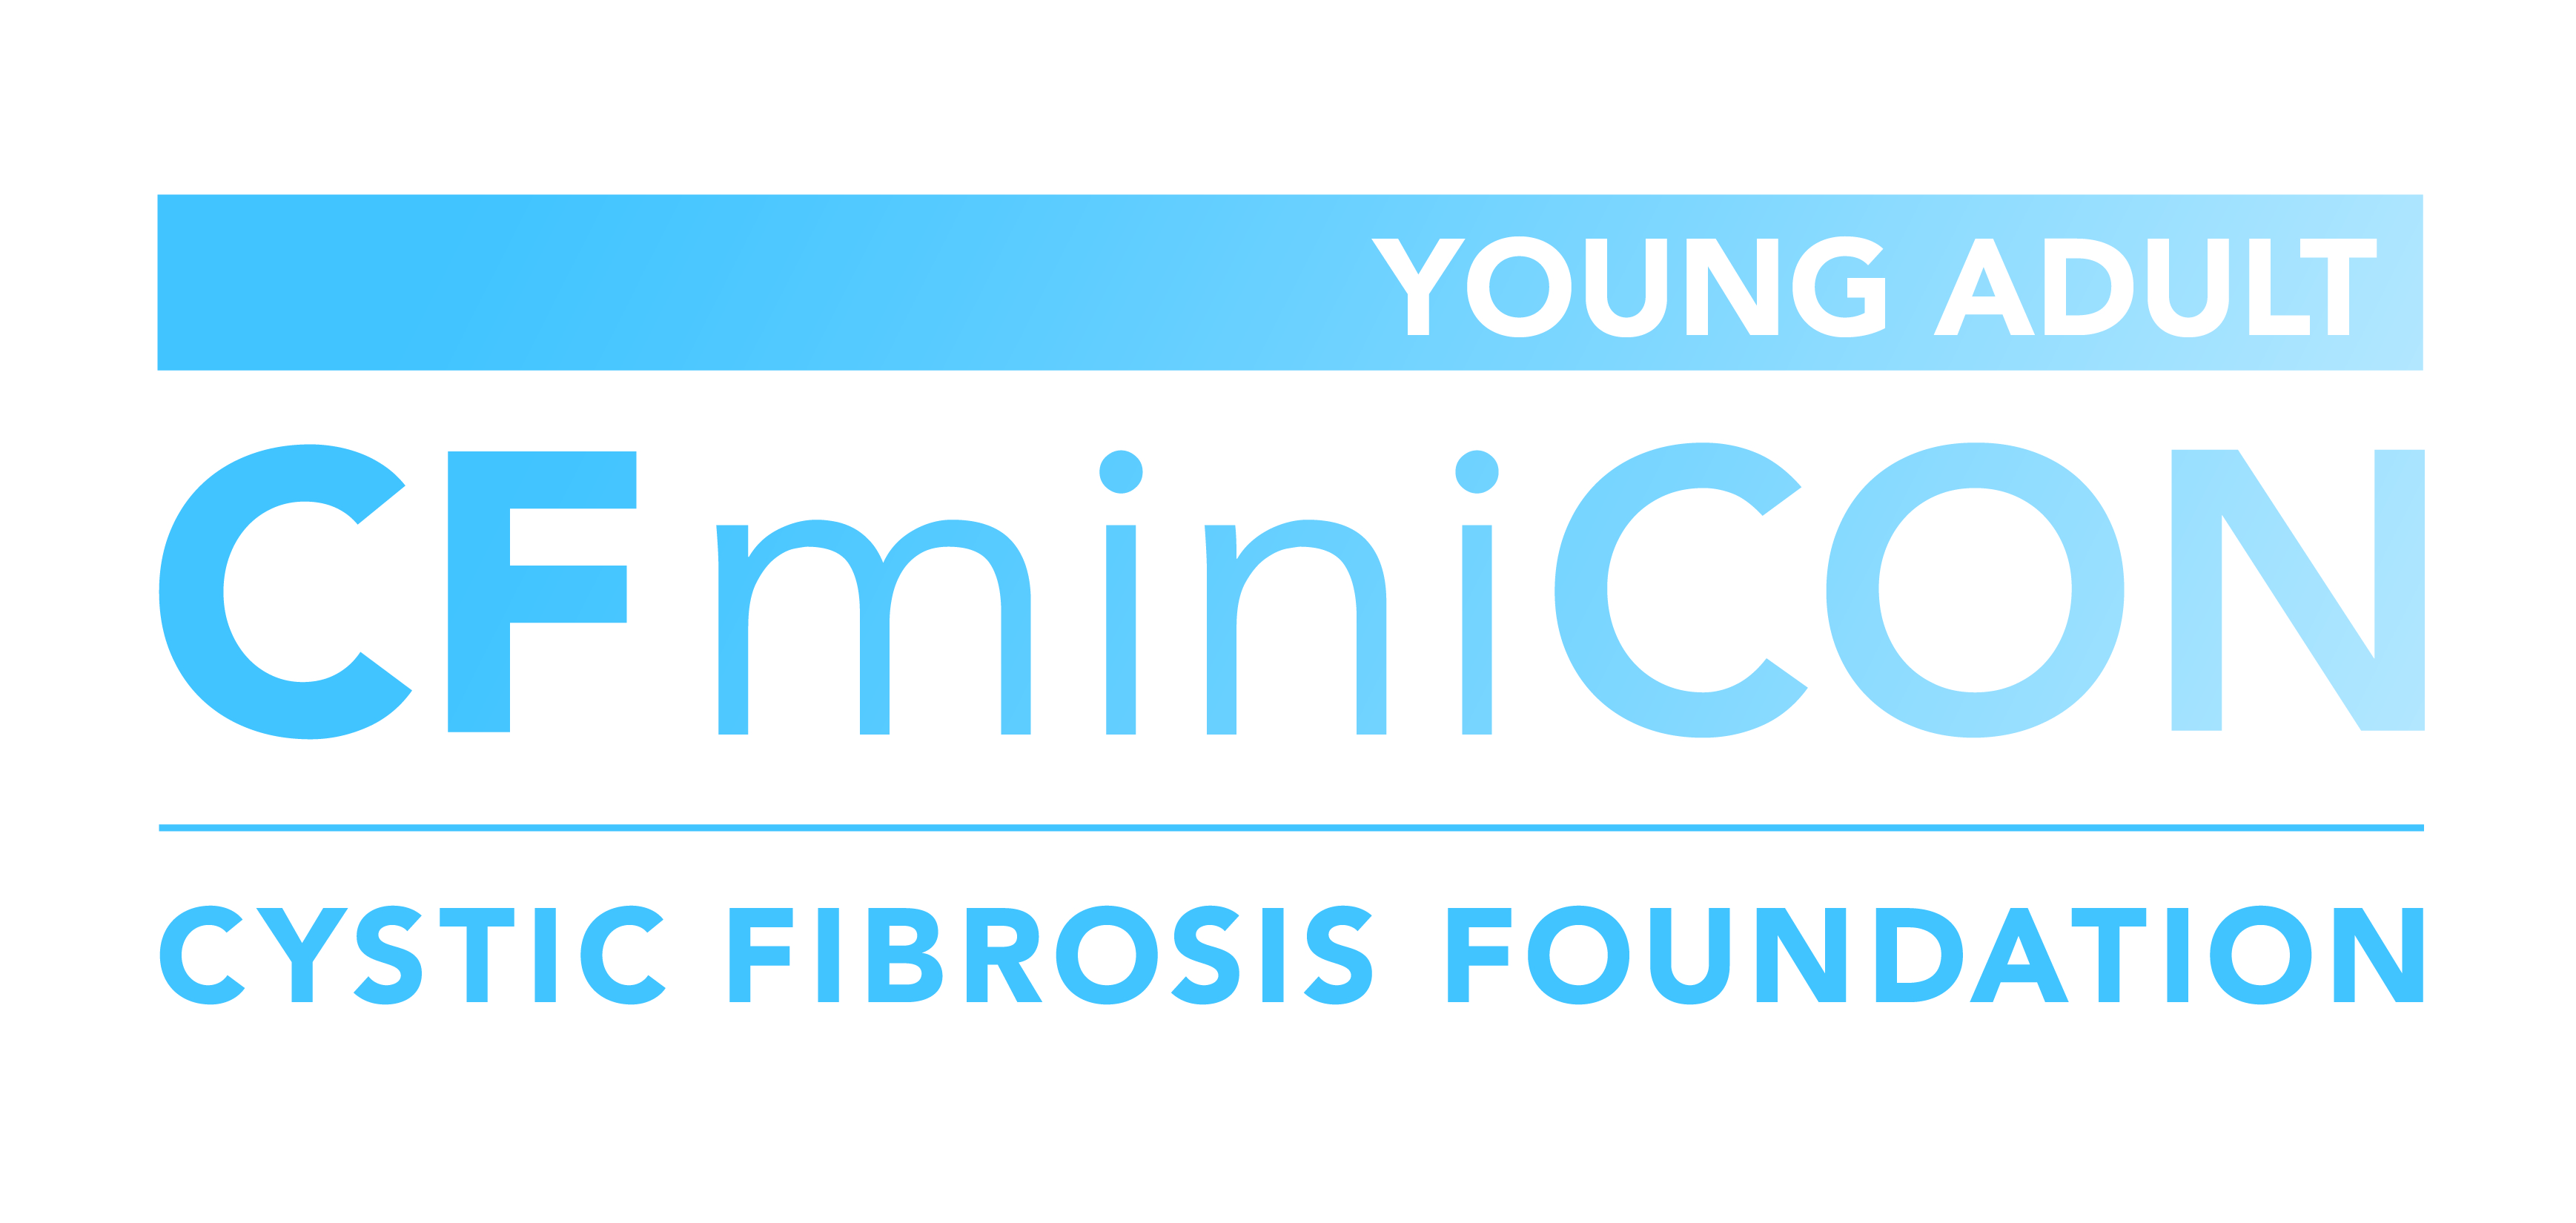 CF MiniCon: Young Adult